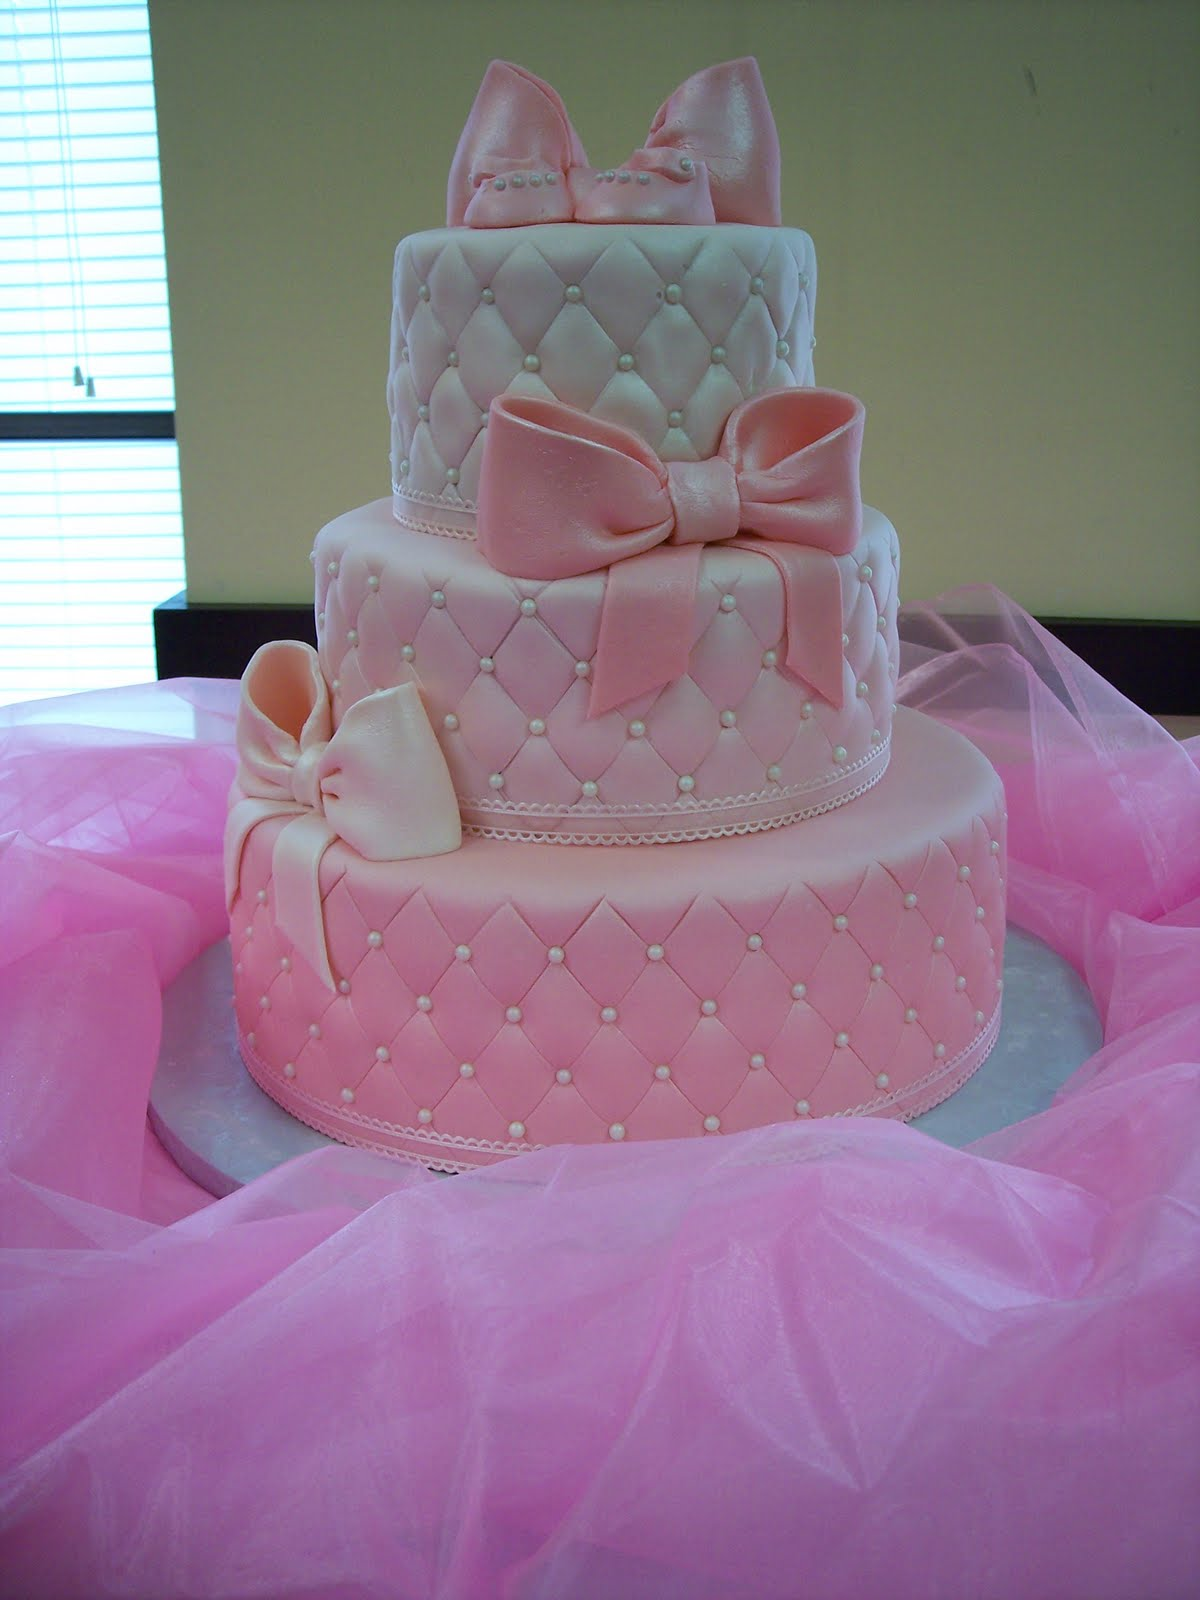 Baby Shower Cakes with Pearls